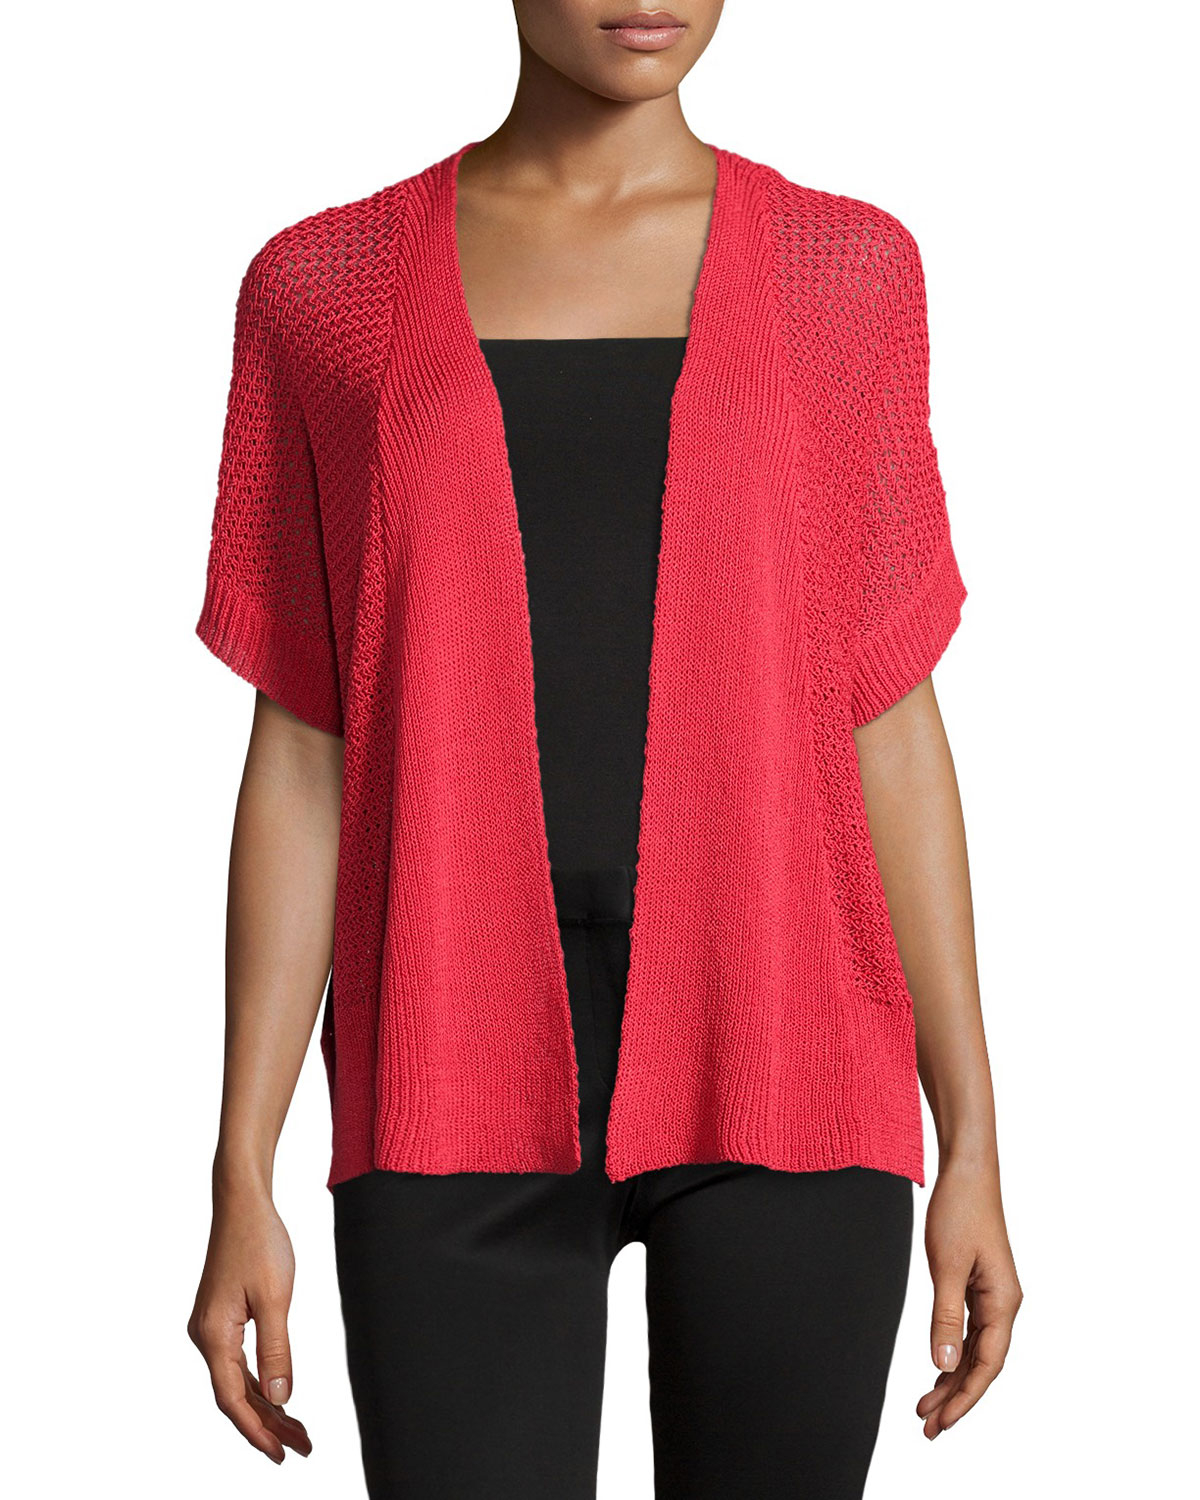 Joan vass Short-sleeve Open-front Cardigan in Red | Lyst